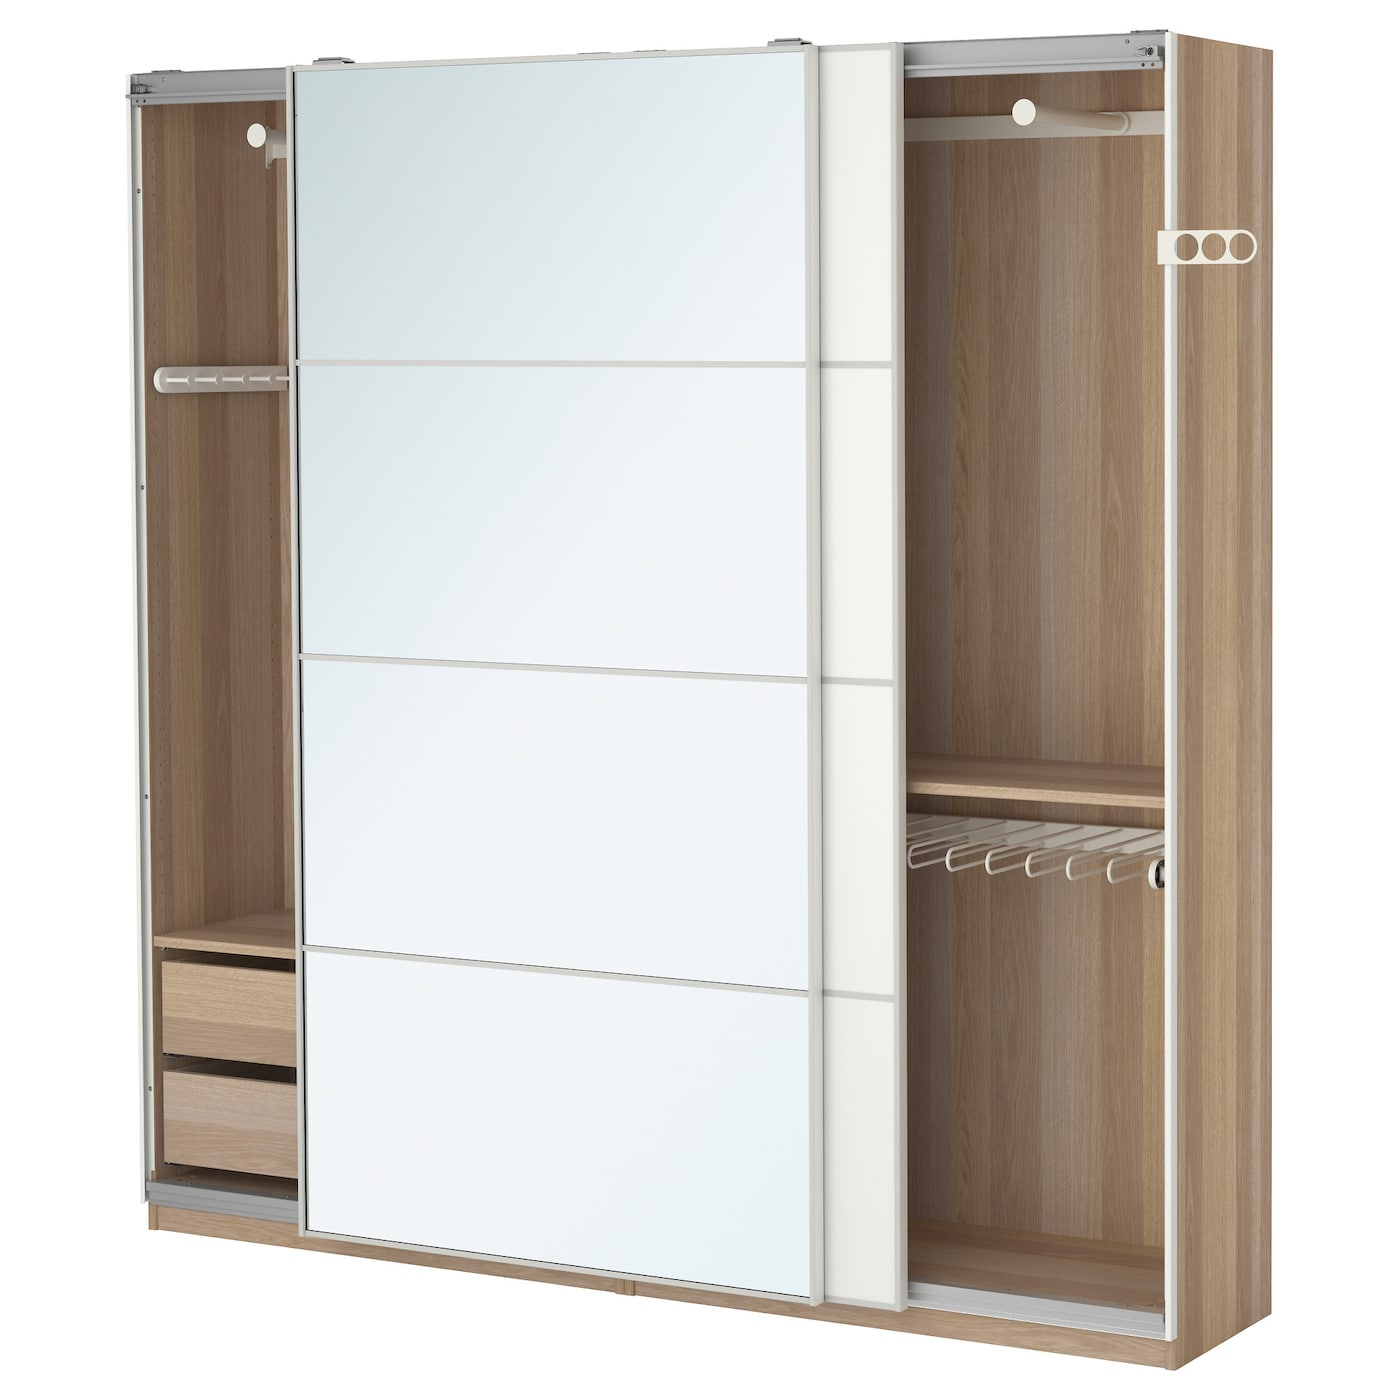 pax wardrobe white stained oak effect auli mehamn. Black Bedroom Furniture Sets. Home Design Ideas